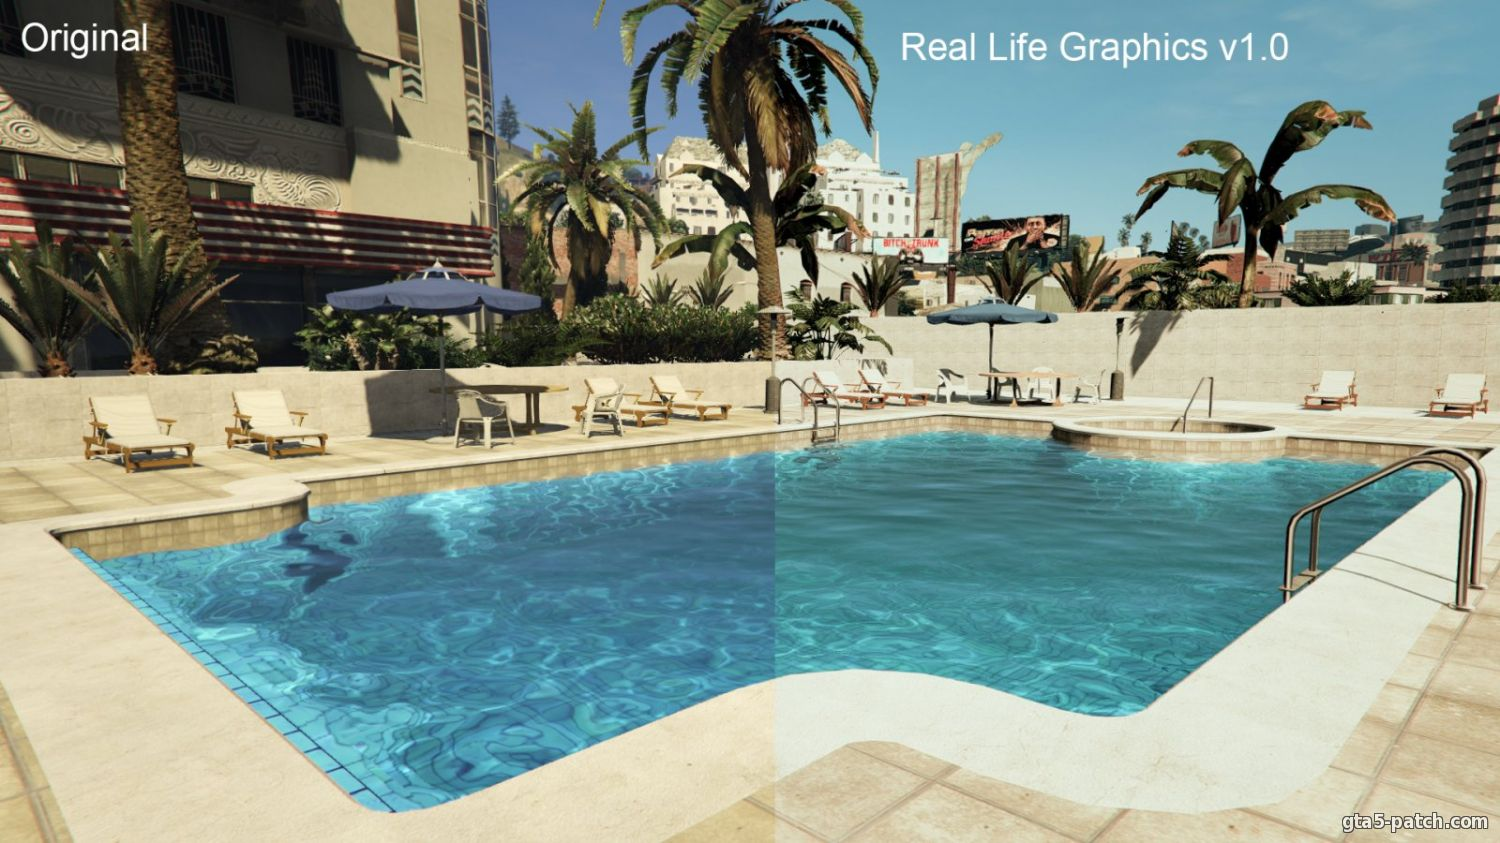 Real Life Graphics 1.0